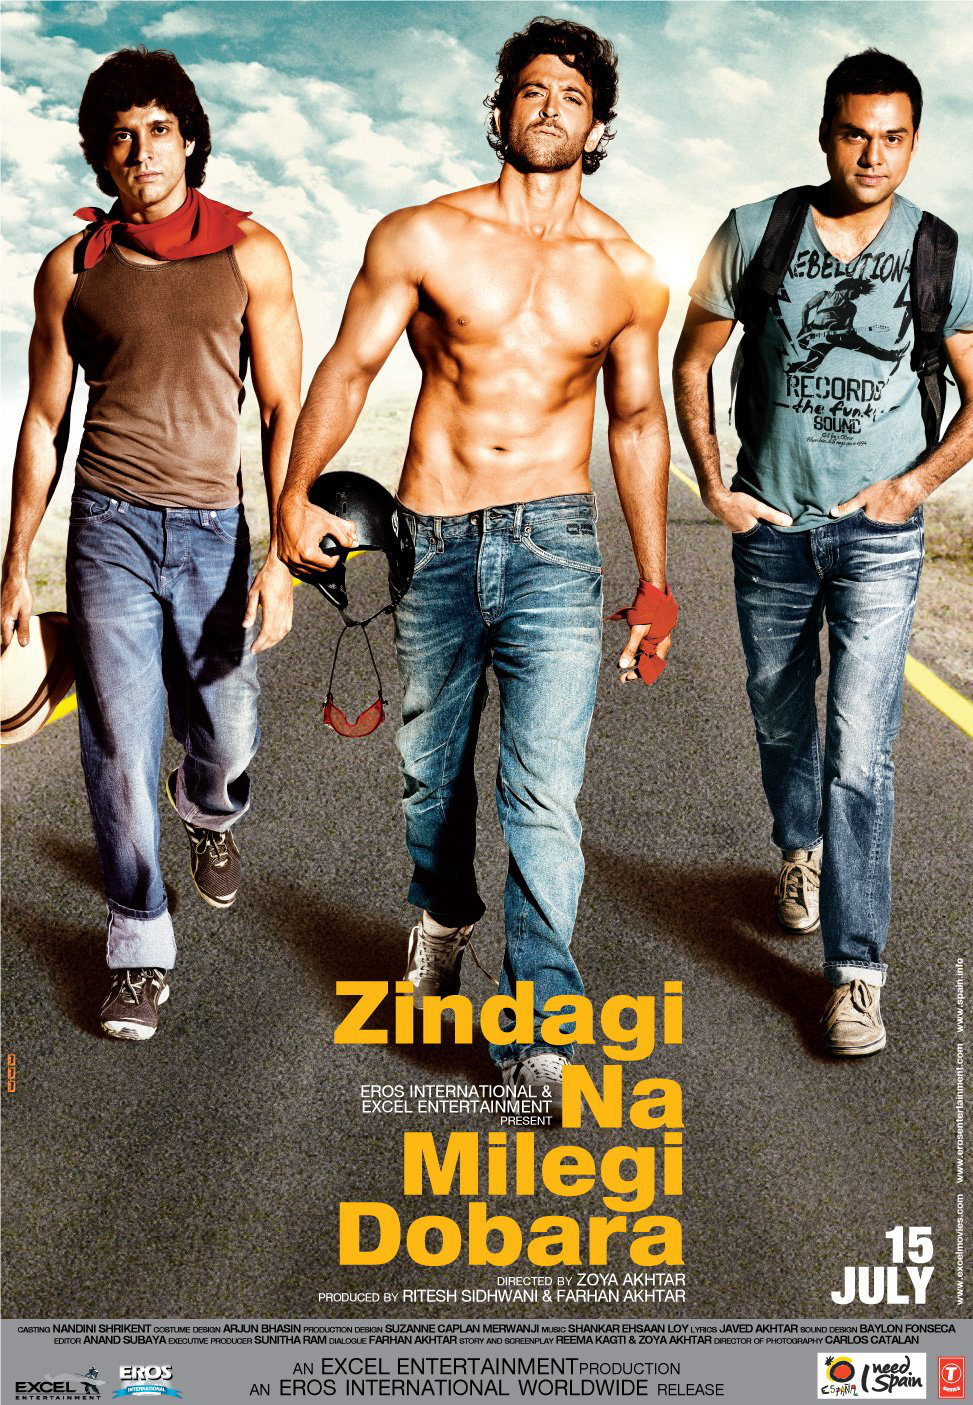 Zindagi Na Milegi Dobara Movie Poster Ft. Farhan Akhtar, Hrithik Roshan, Abhay Deol - Full HD Wallpaper